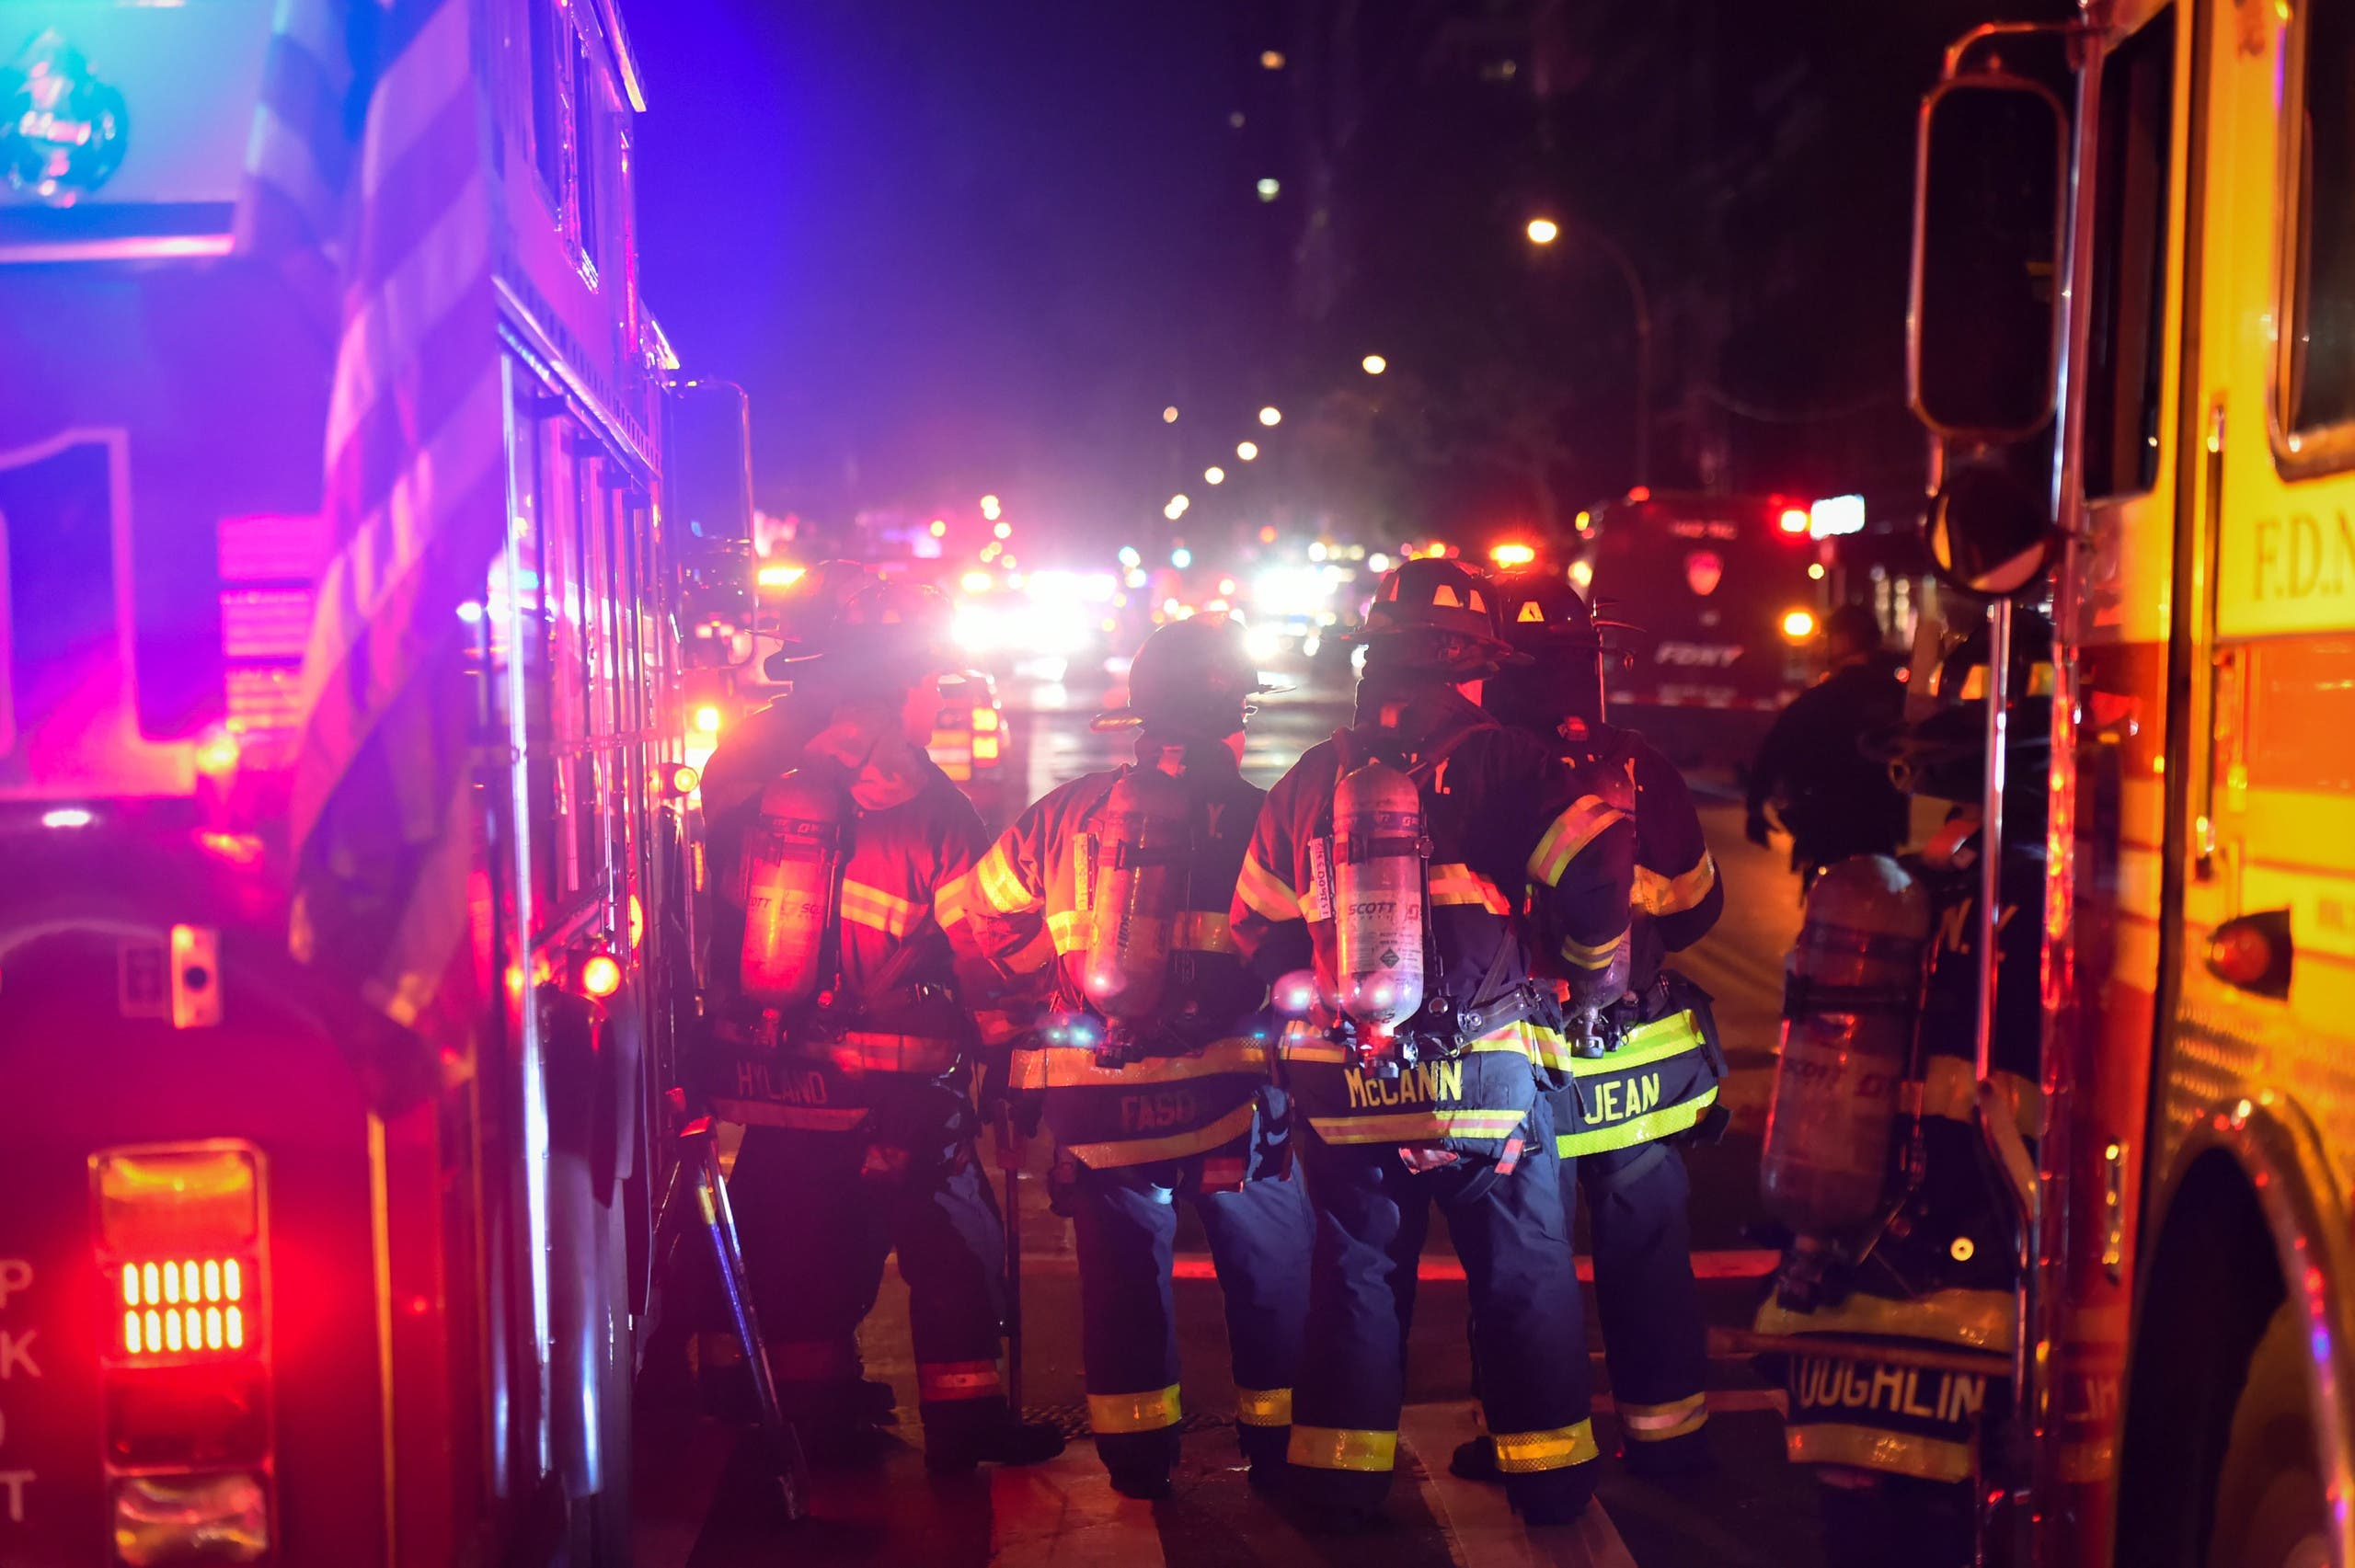 New York City firefighters stand near the site of an explosion in the Chelsea neighborhood of Manhattan, New York, US September 17, 2016. (Reuters)